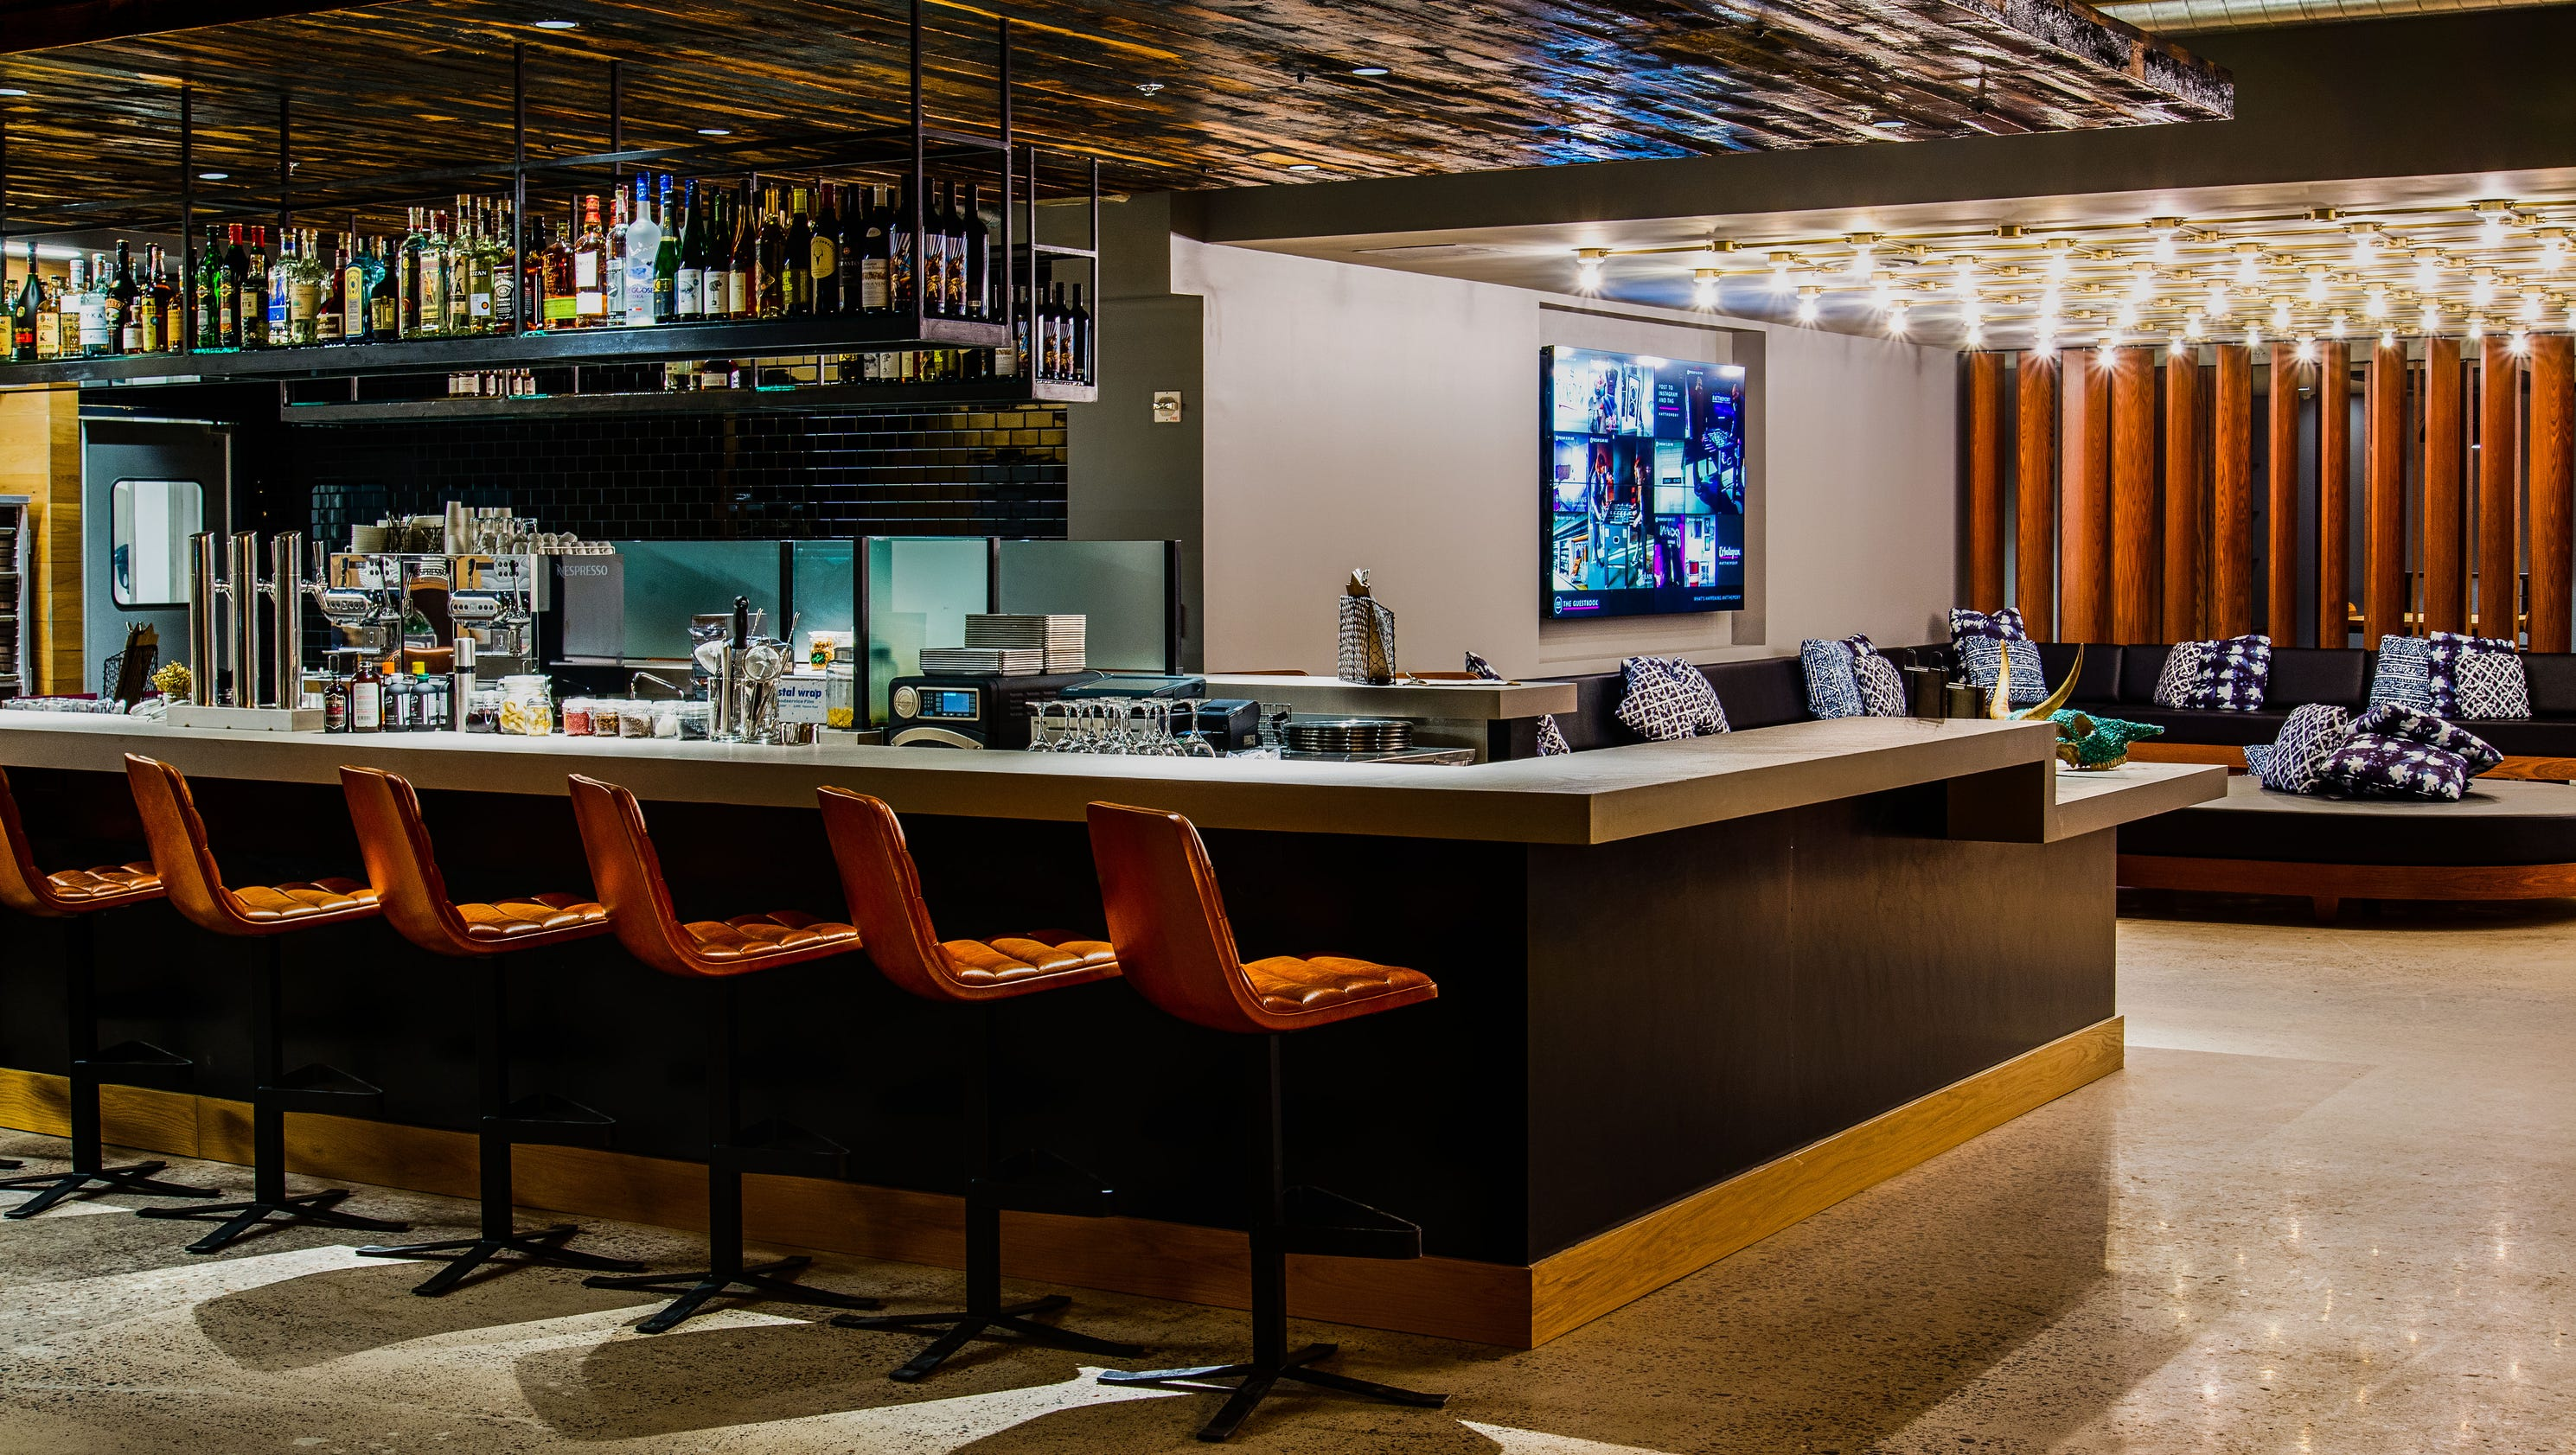 Grand Opening Of Moxy Hotel In Tempe